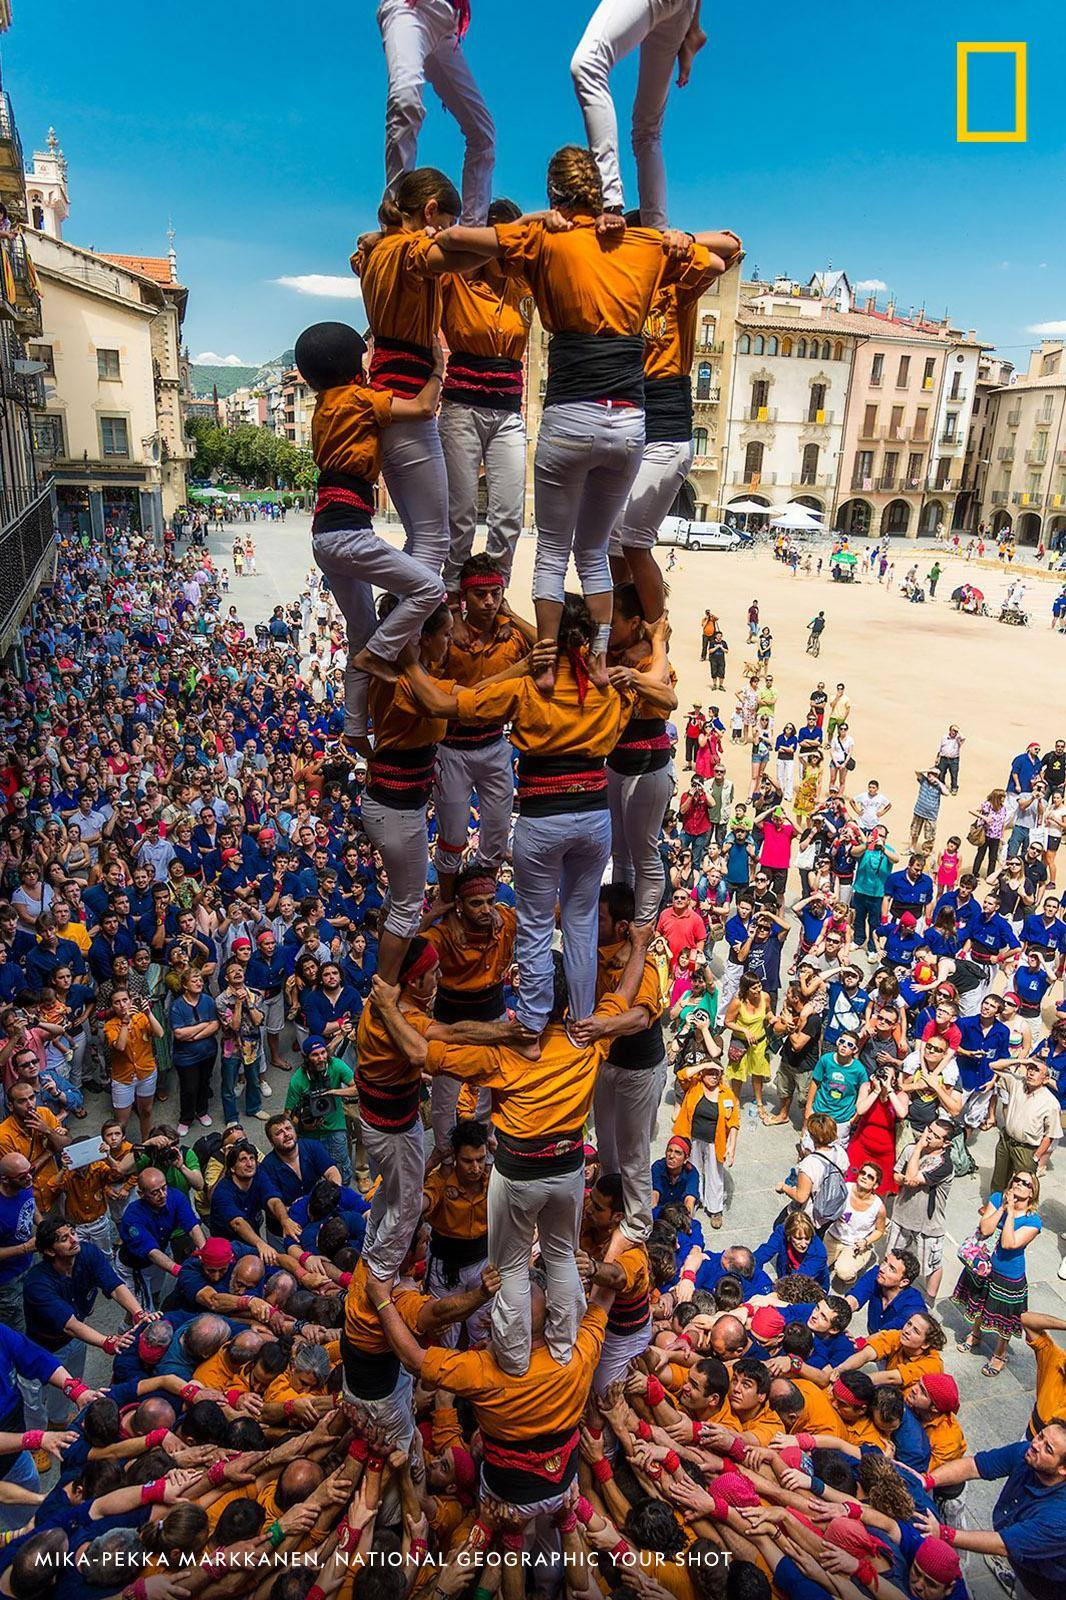 """For hundreds of years, Catalans have been mastering the building of castells, human castles or towers. And today it is more popular and safer than ever,"" writes photographer Mika-Pekka Markkanen. https://on.natgeo.com/2zRsUvD"